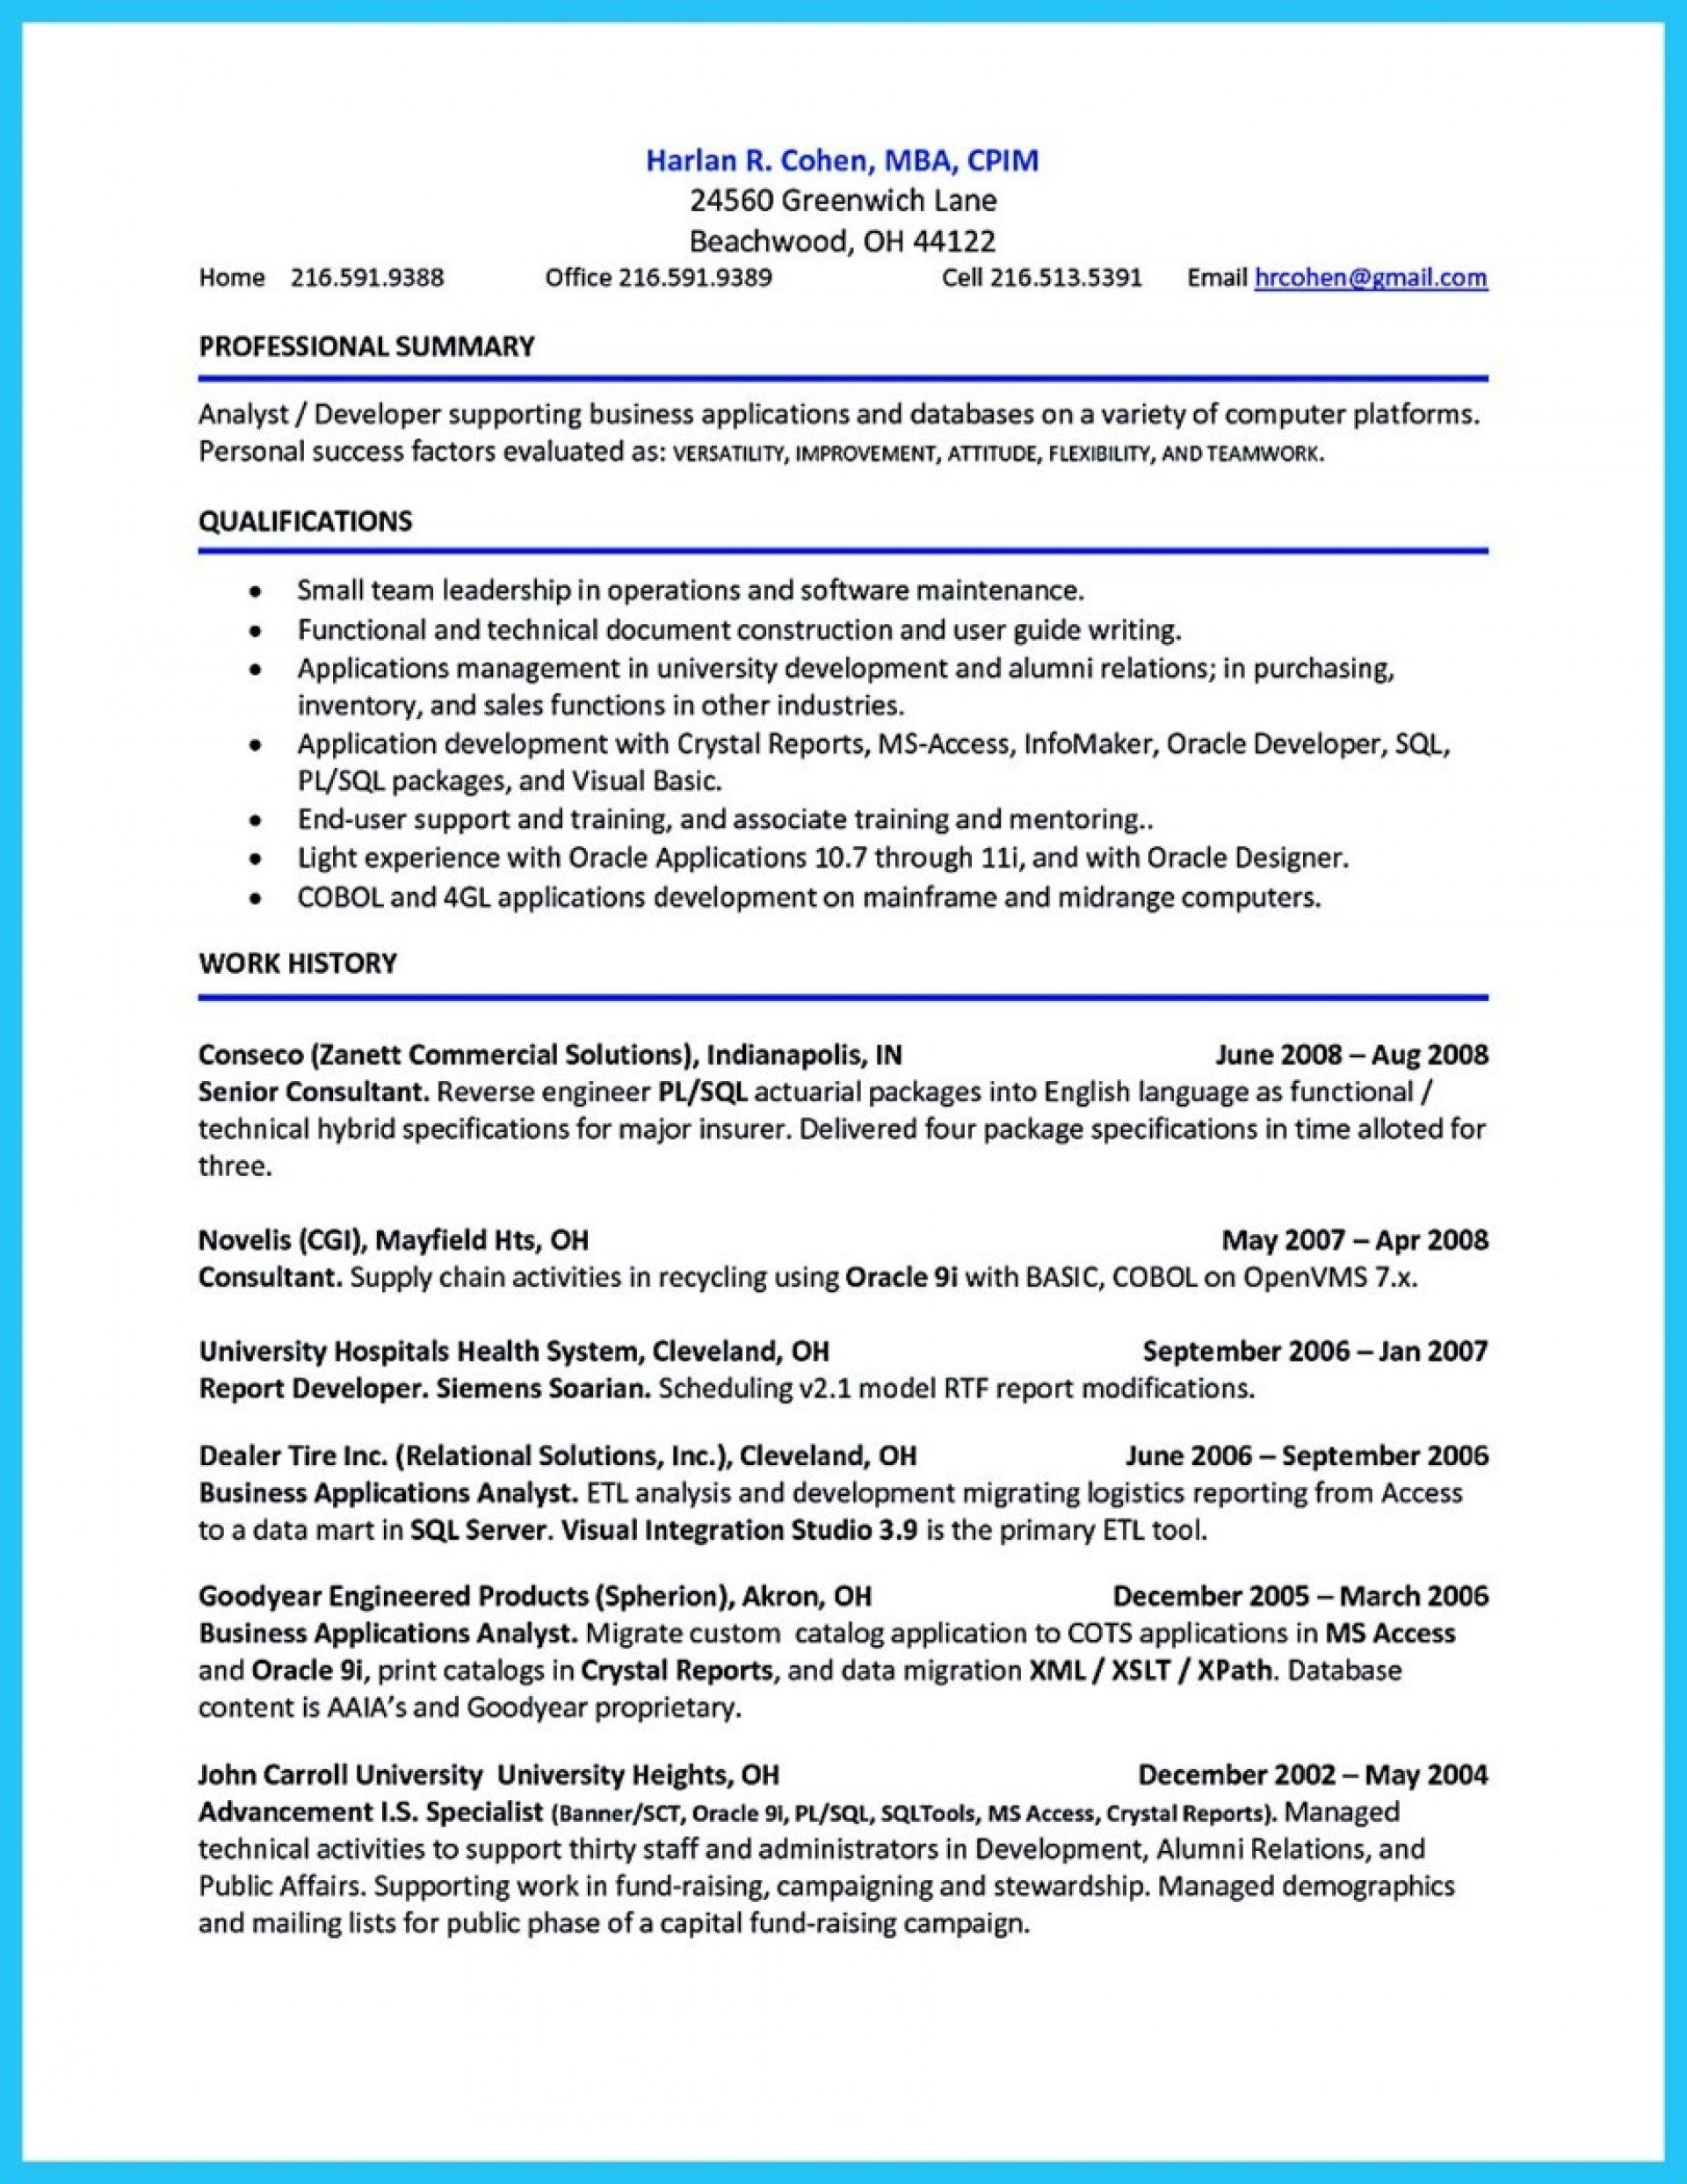 002 Mba Essay Teamwork Writing Consultant Outstanding Best Consultants Application 1920